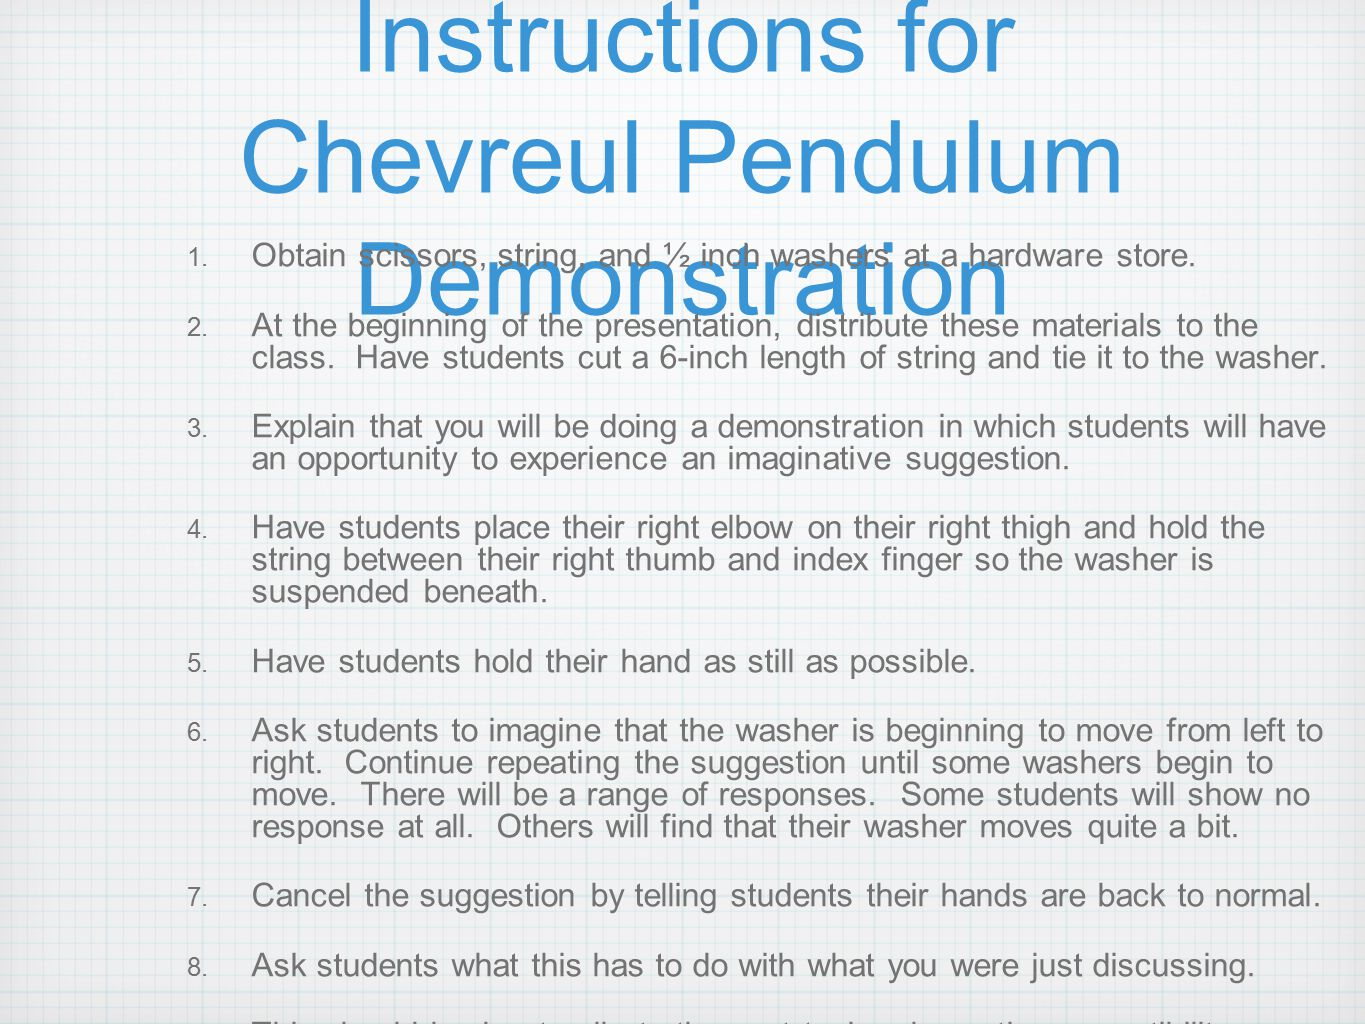 Instructions for Chevreul Pendulum Demonstration 1.